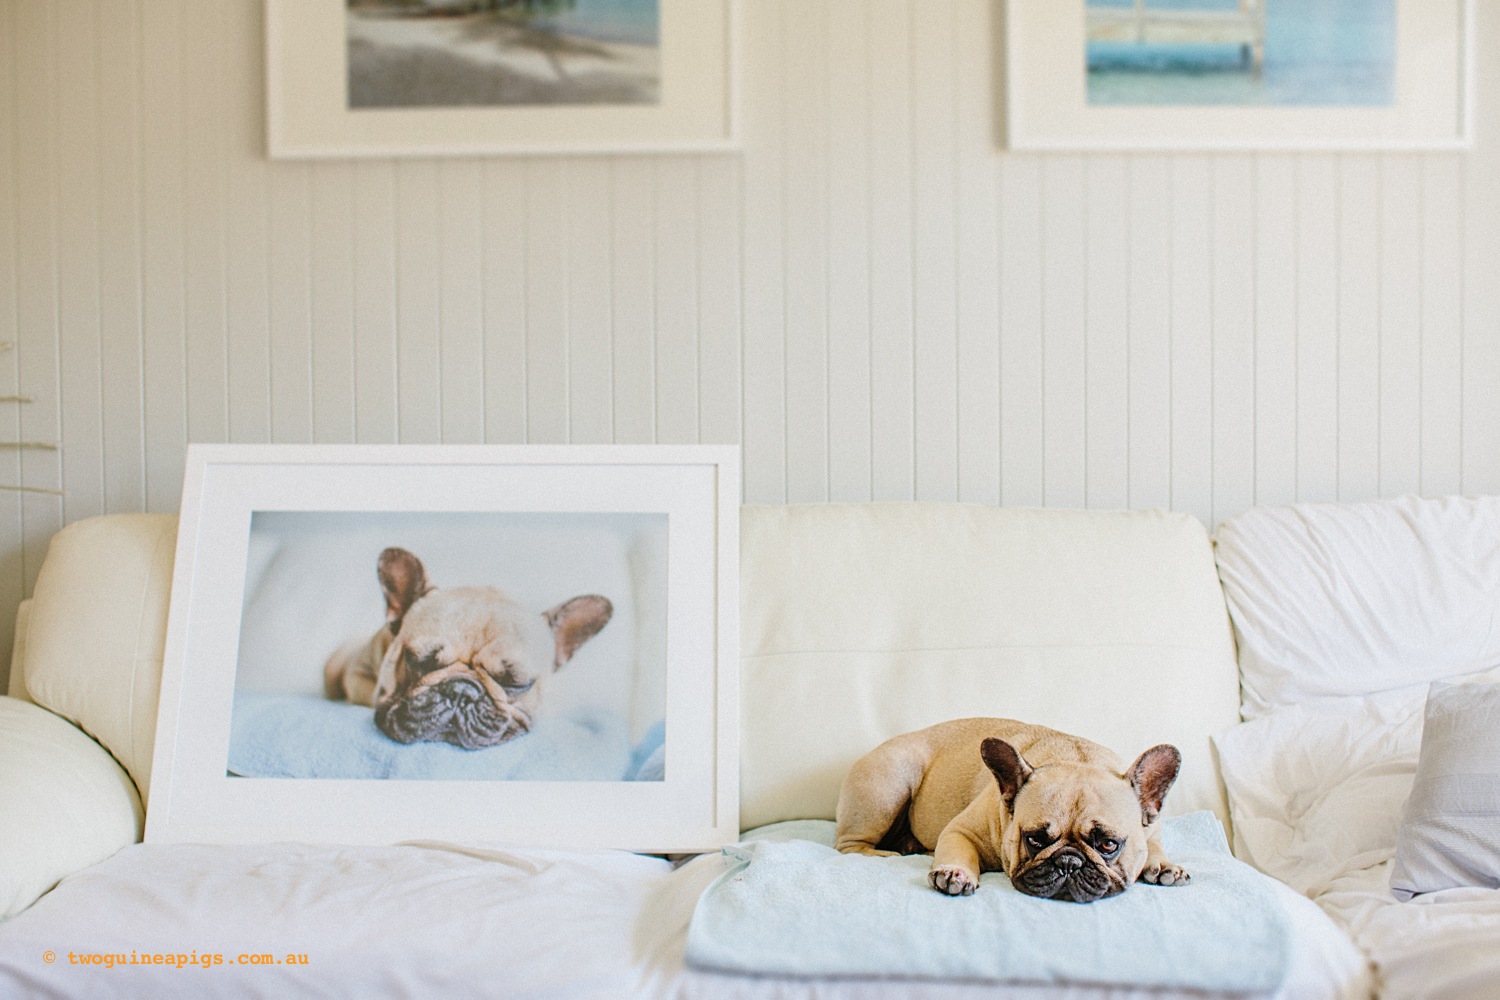 twoguineapigs_pom_french_bulldog_framed_sydney_pet_photographer_1500.jpg